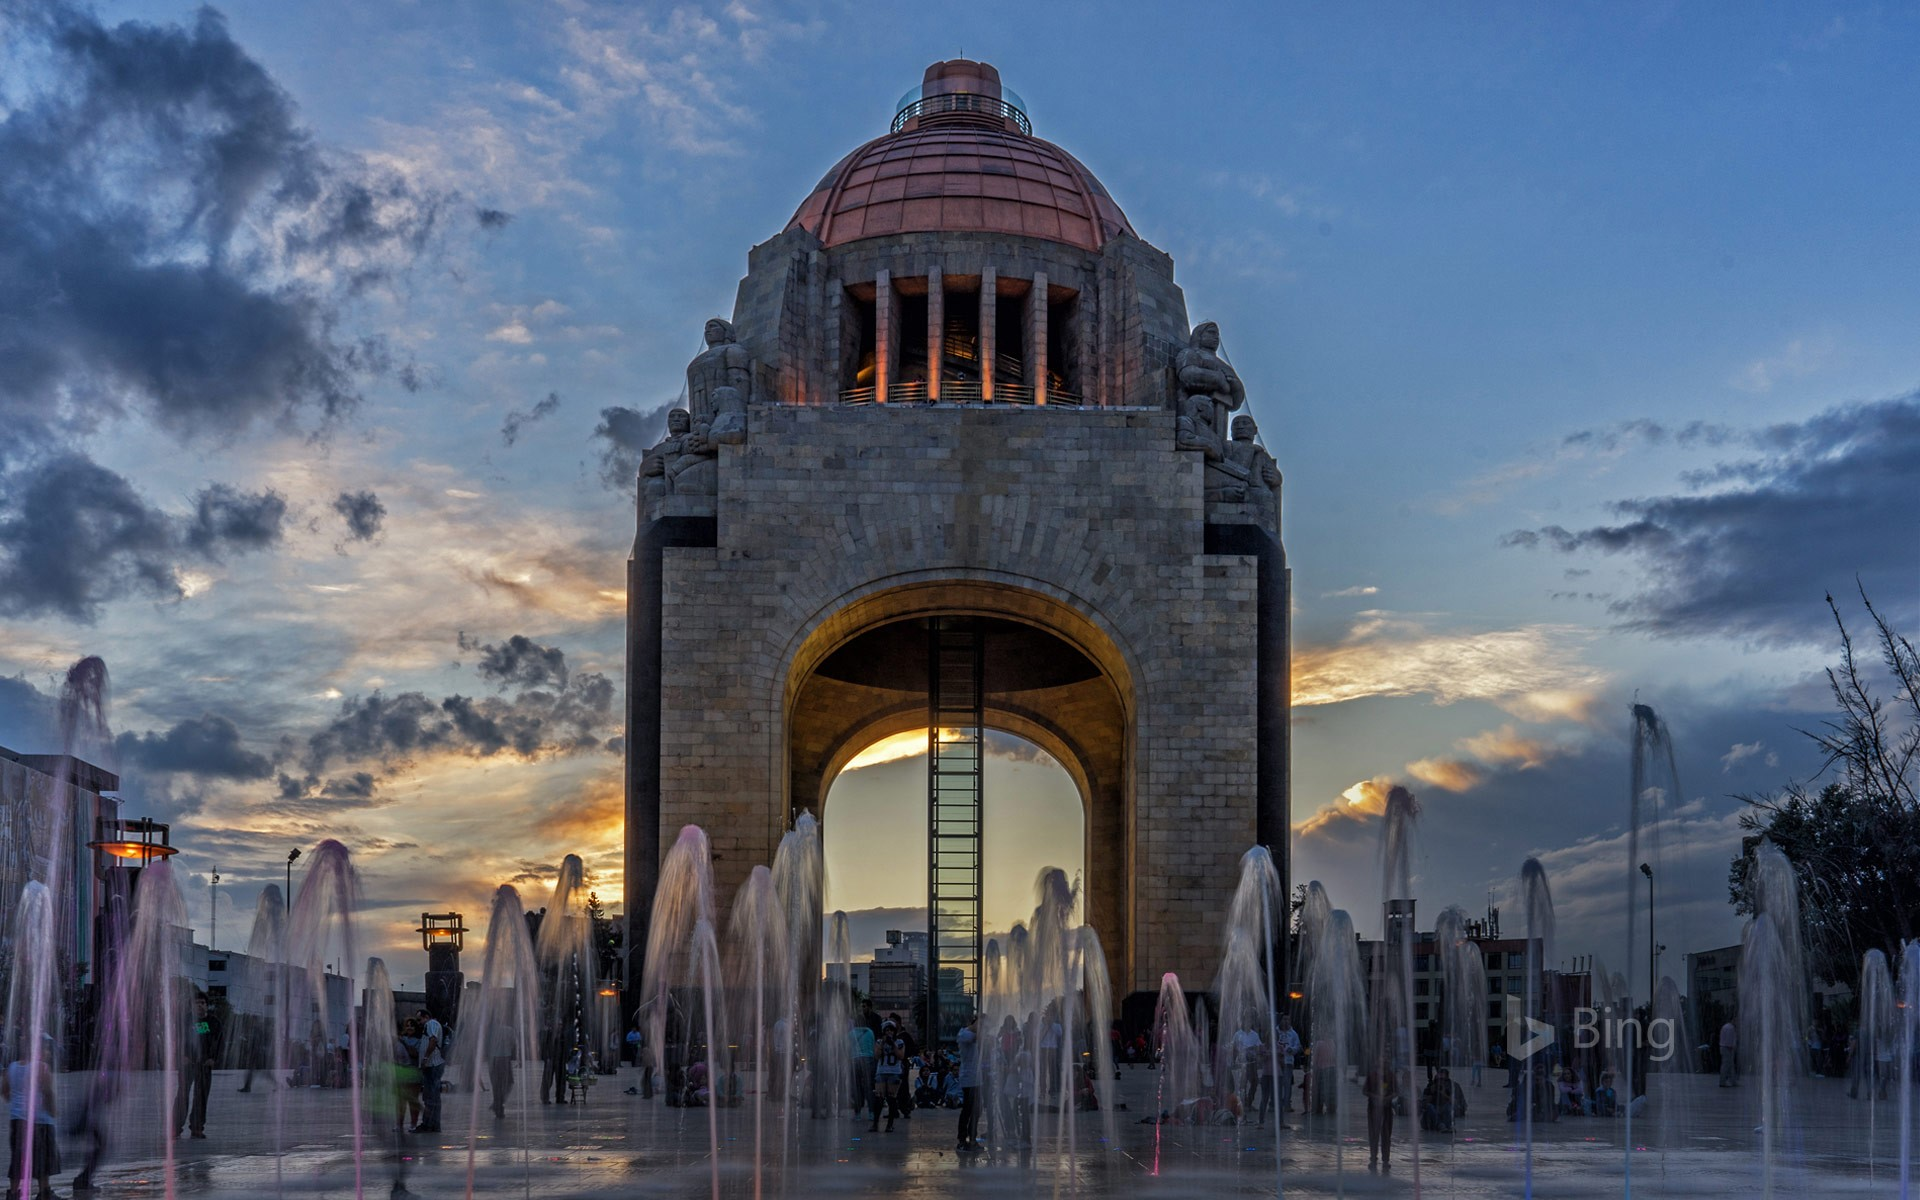 Monumento a la Revolución in Mexico City